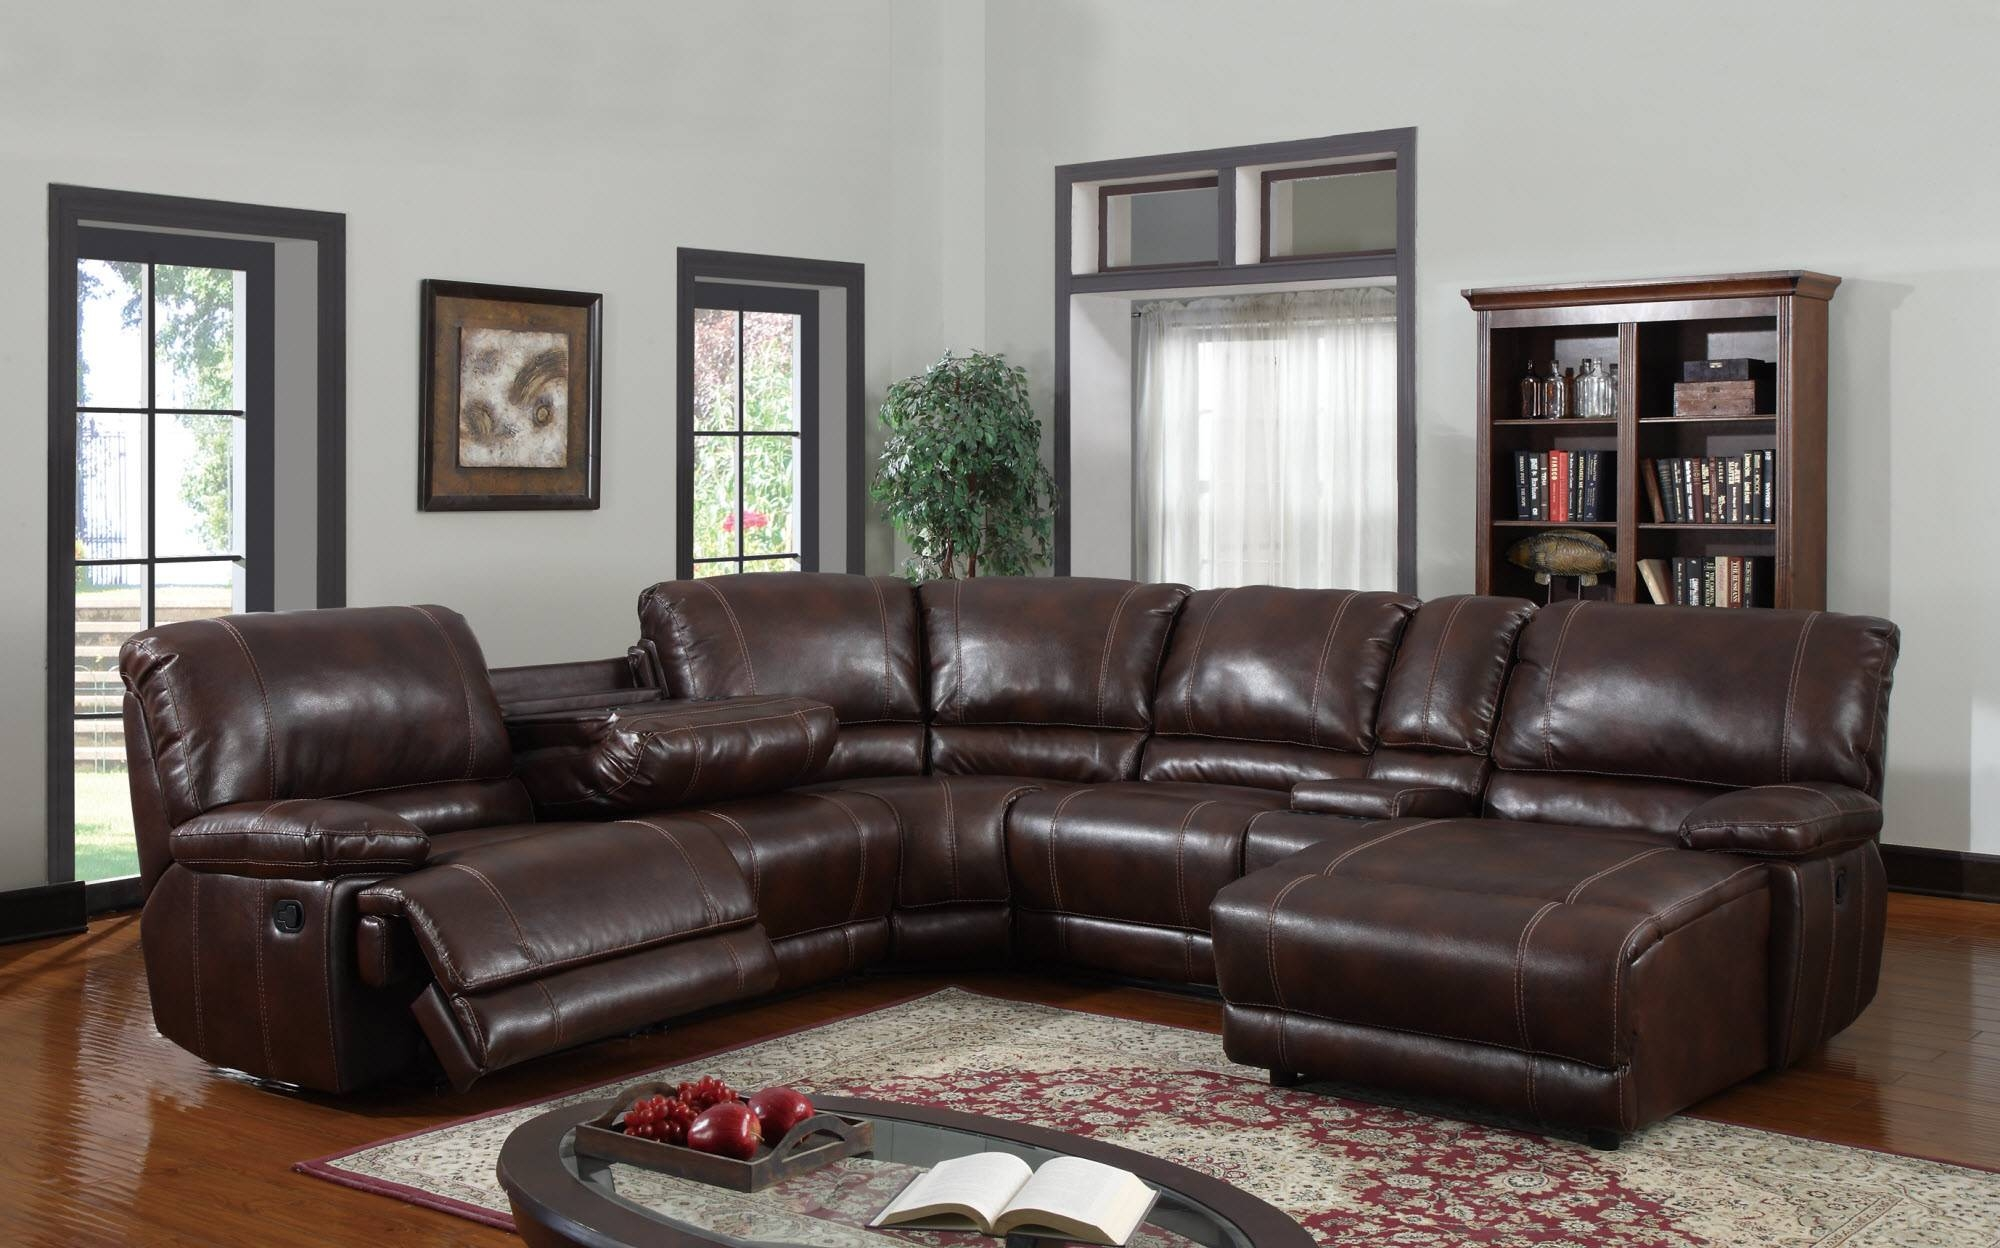 Cozy 6 Piece Leather Sectional Sofa 80 With Additional Camel for Camel Colored Sectional Sofa (Image 17 of 30)